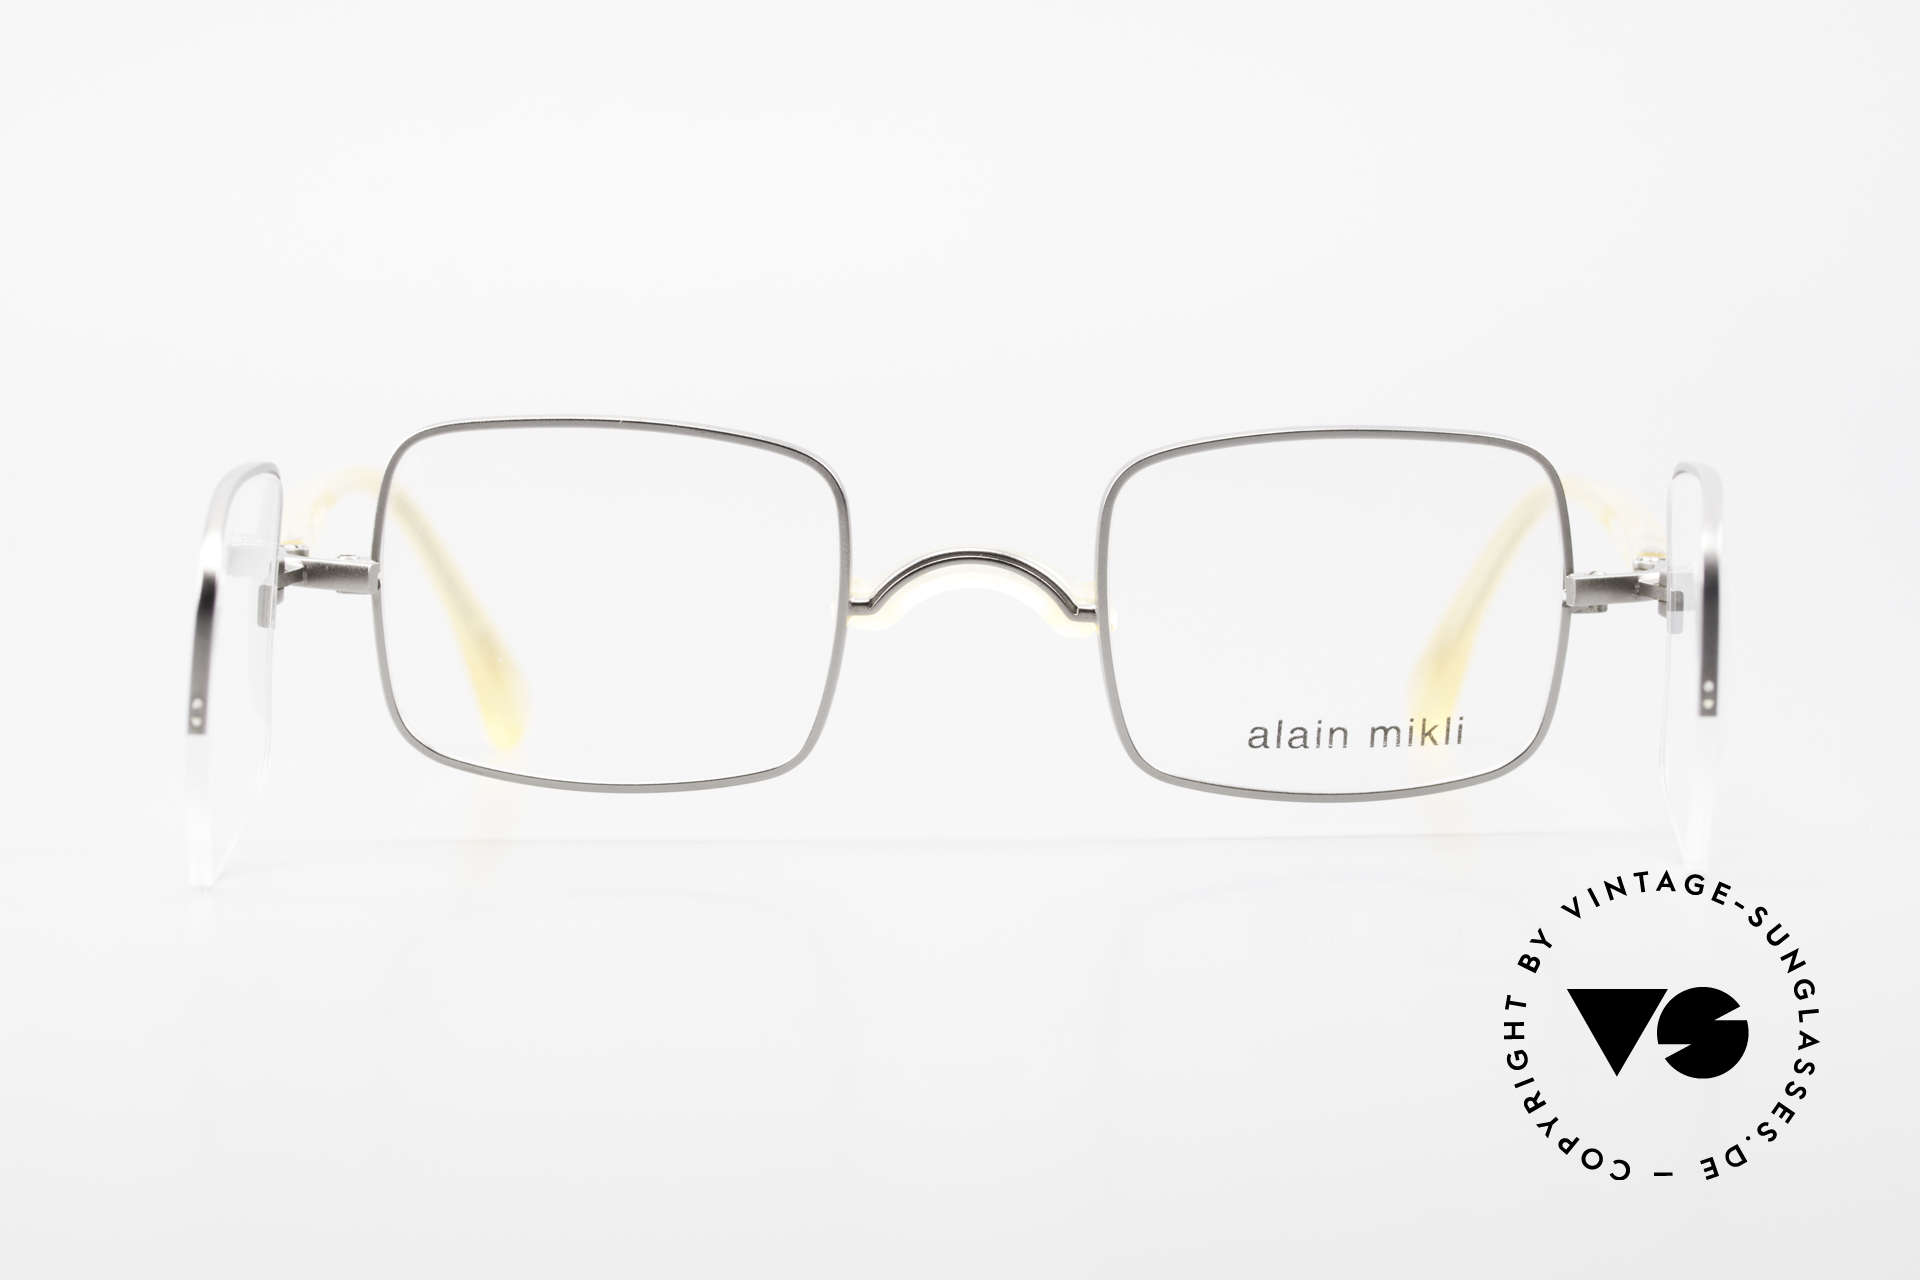 Alain Mikli 0115 / 01 Hinged Lenses 2 in 1 Glasses, or for prescription lenses + sun lenses (practical), Made for Men and Women